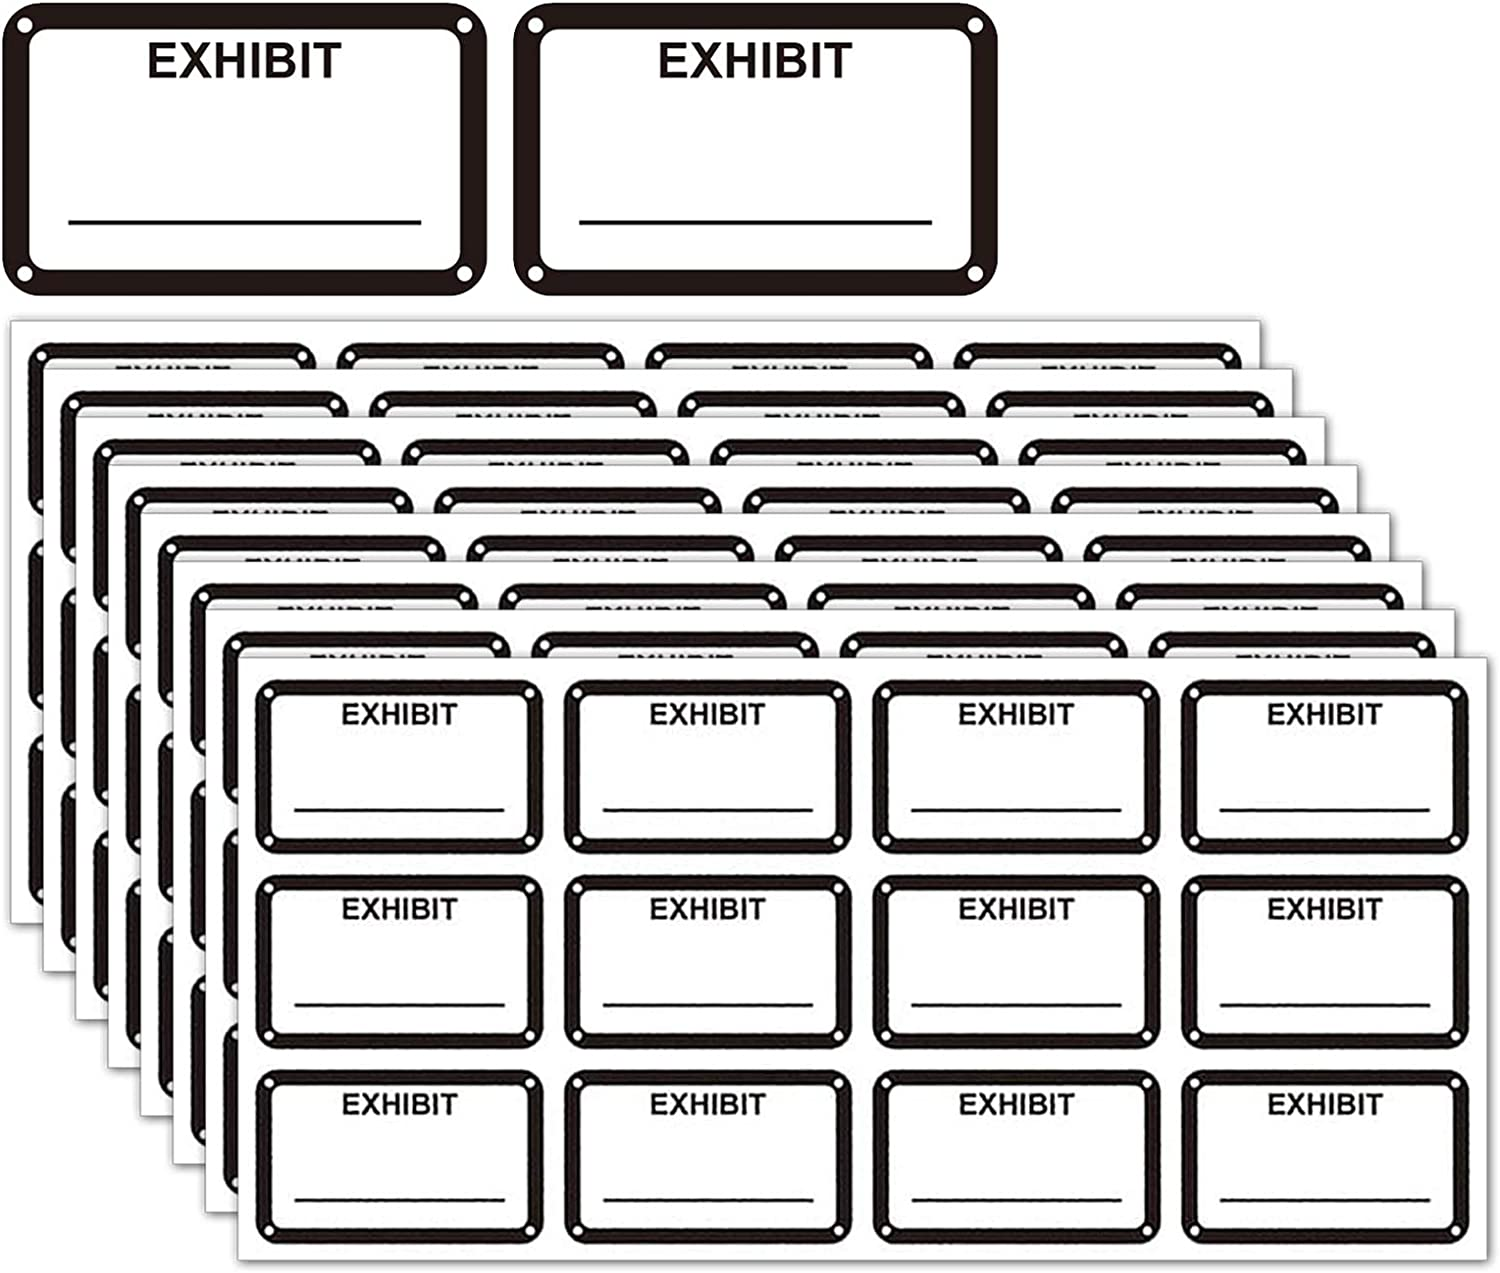 White Legal Exhibit Stickers 1.65 X 1 Inches - Color-Coded Exhibit Labels 300 Stickers Per Pack (White)